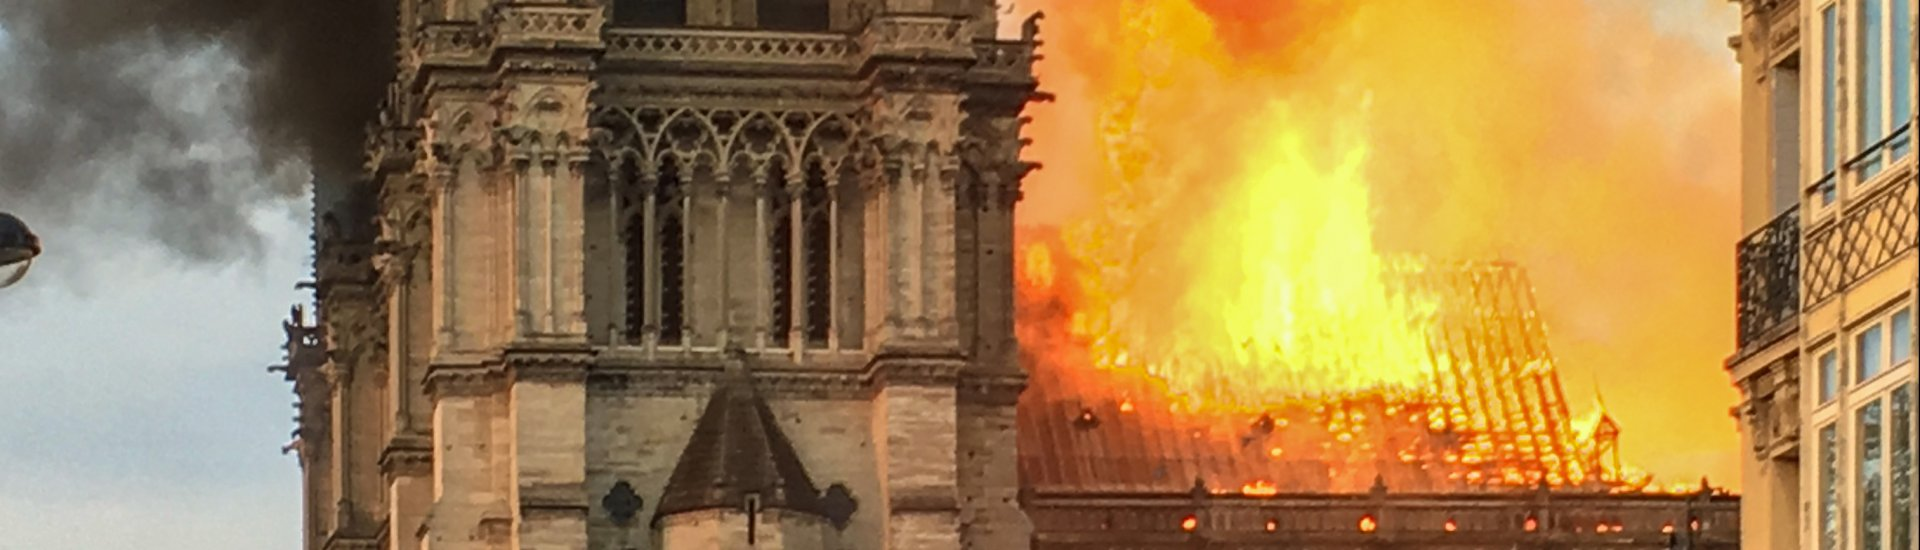 De Notre-Dame in Parijs staat in brand (15 april 2019).